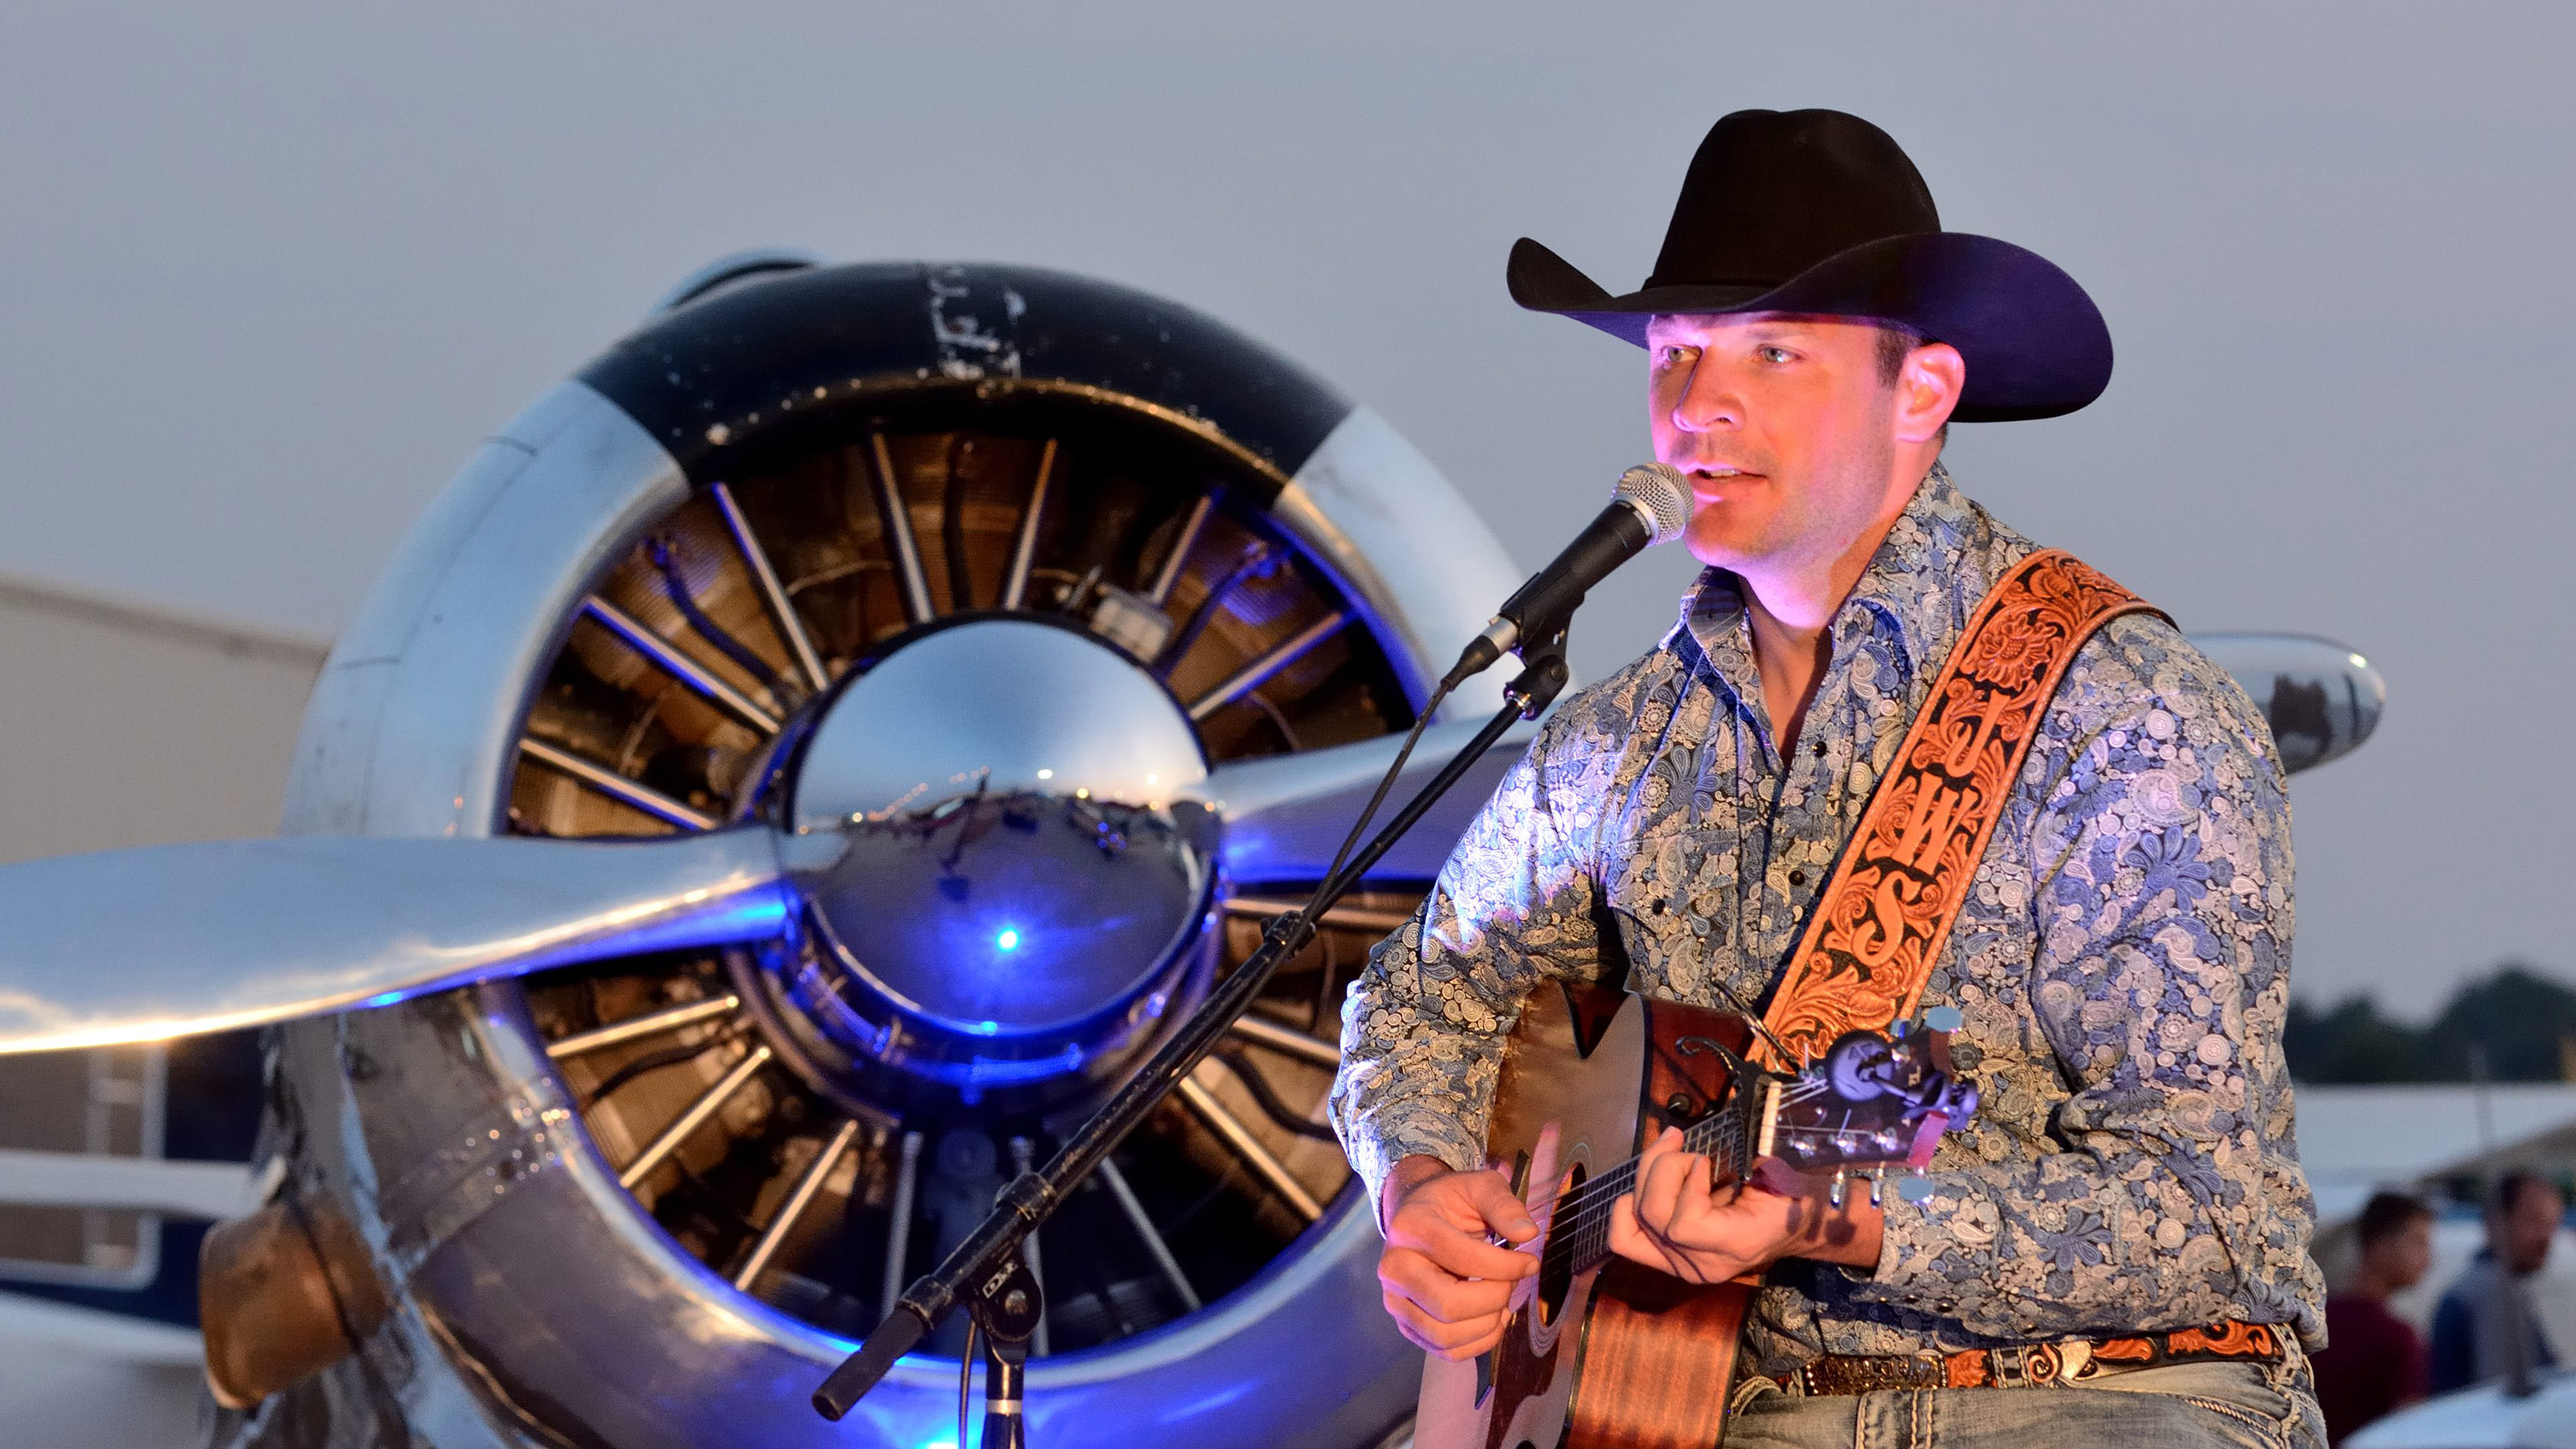 Country singer John Wayne Schulz--who also is a pilot and an active flight instructor--entertains the crowd during Friday evening's Barnstormers Party at AOPA's 2017 Norman Fly-In. A North American T-6 serves as the backdrop. Photo by Mike Collins.